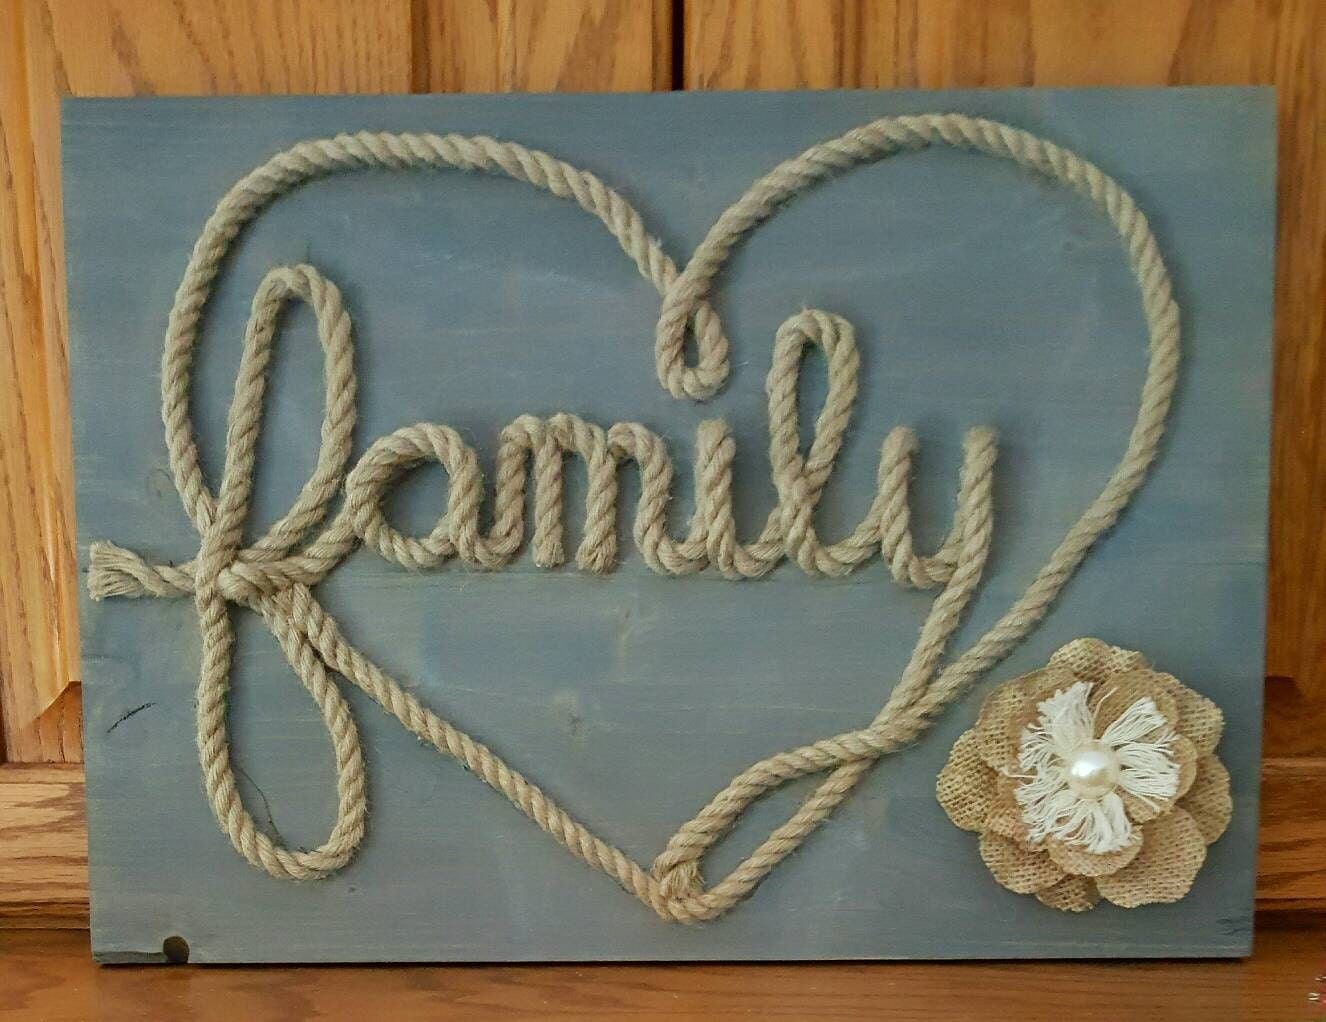 Rope Sign Family Signburlap Rope Family Rope Sign Wooden. November 30th Signs Of Stroke. Pantry Signs. Down Signs Of Stroke. Bts Signs. Farm Road Signs. Piercing Signs. Boat Signs. Ornamental Signs